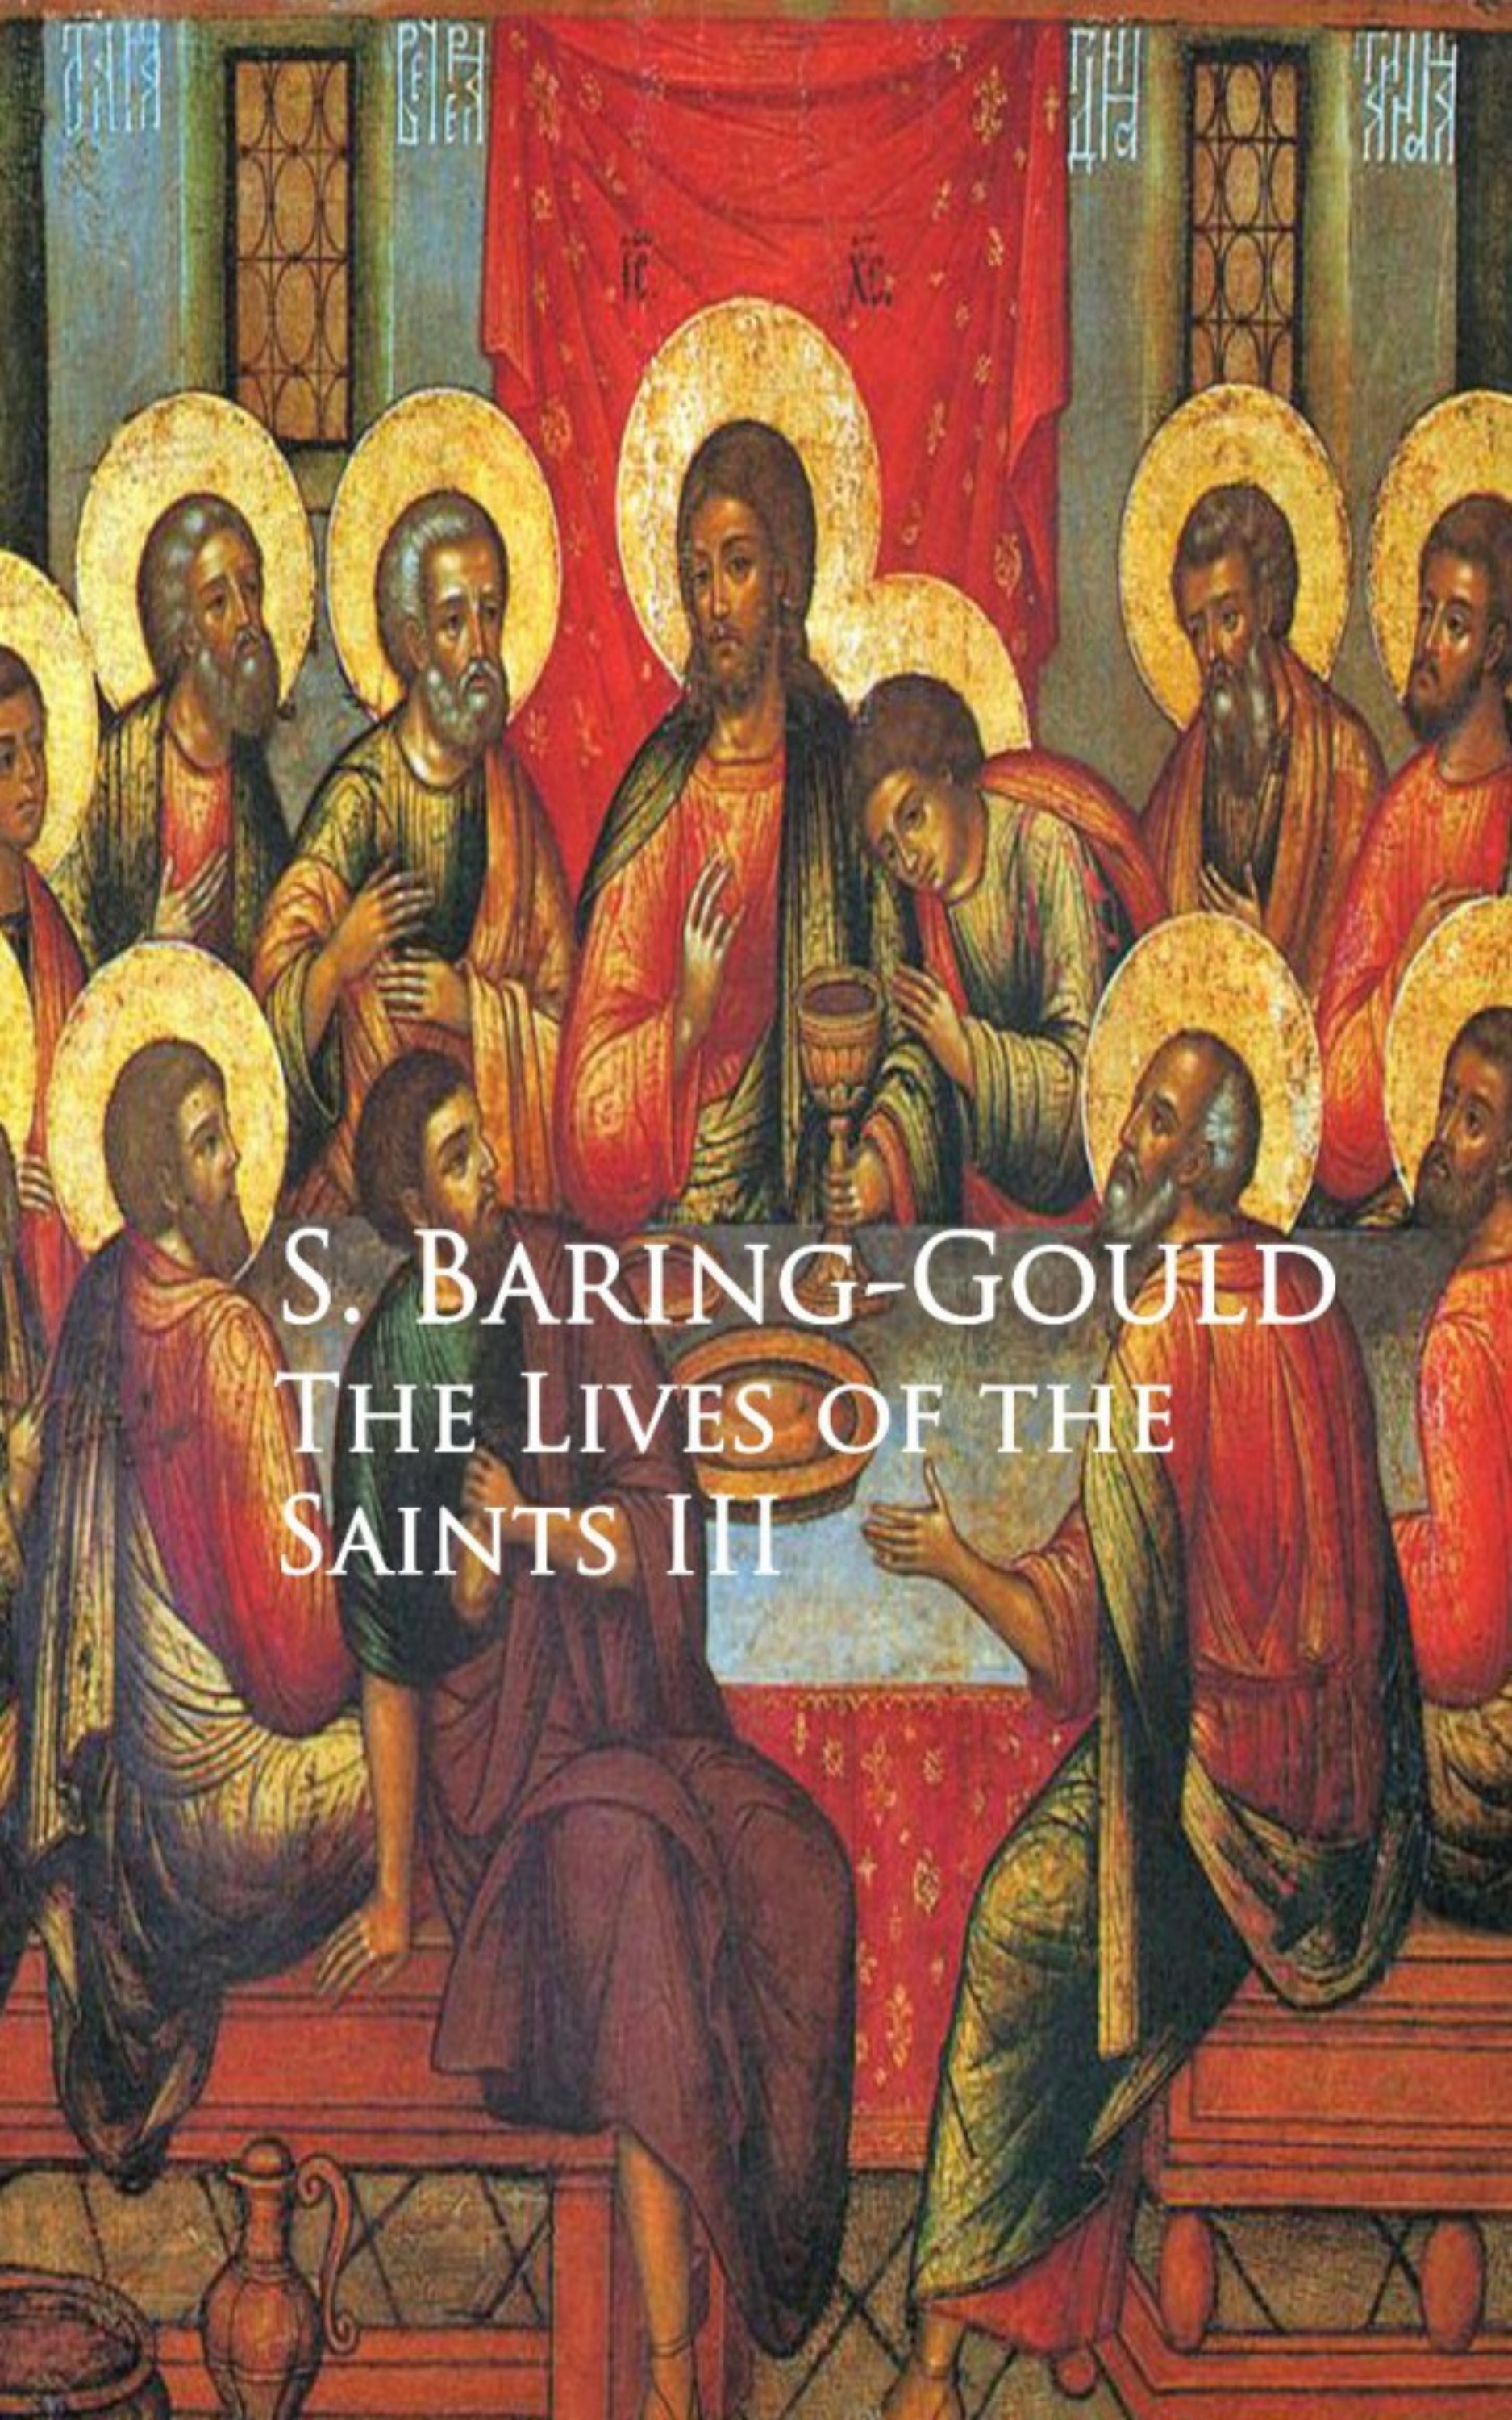 S. Baring-Gould The Lives of the Saints III city of saints